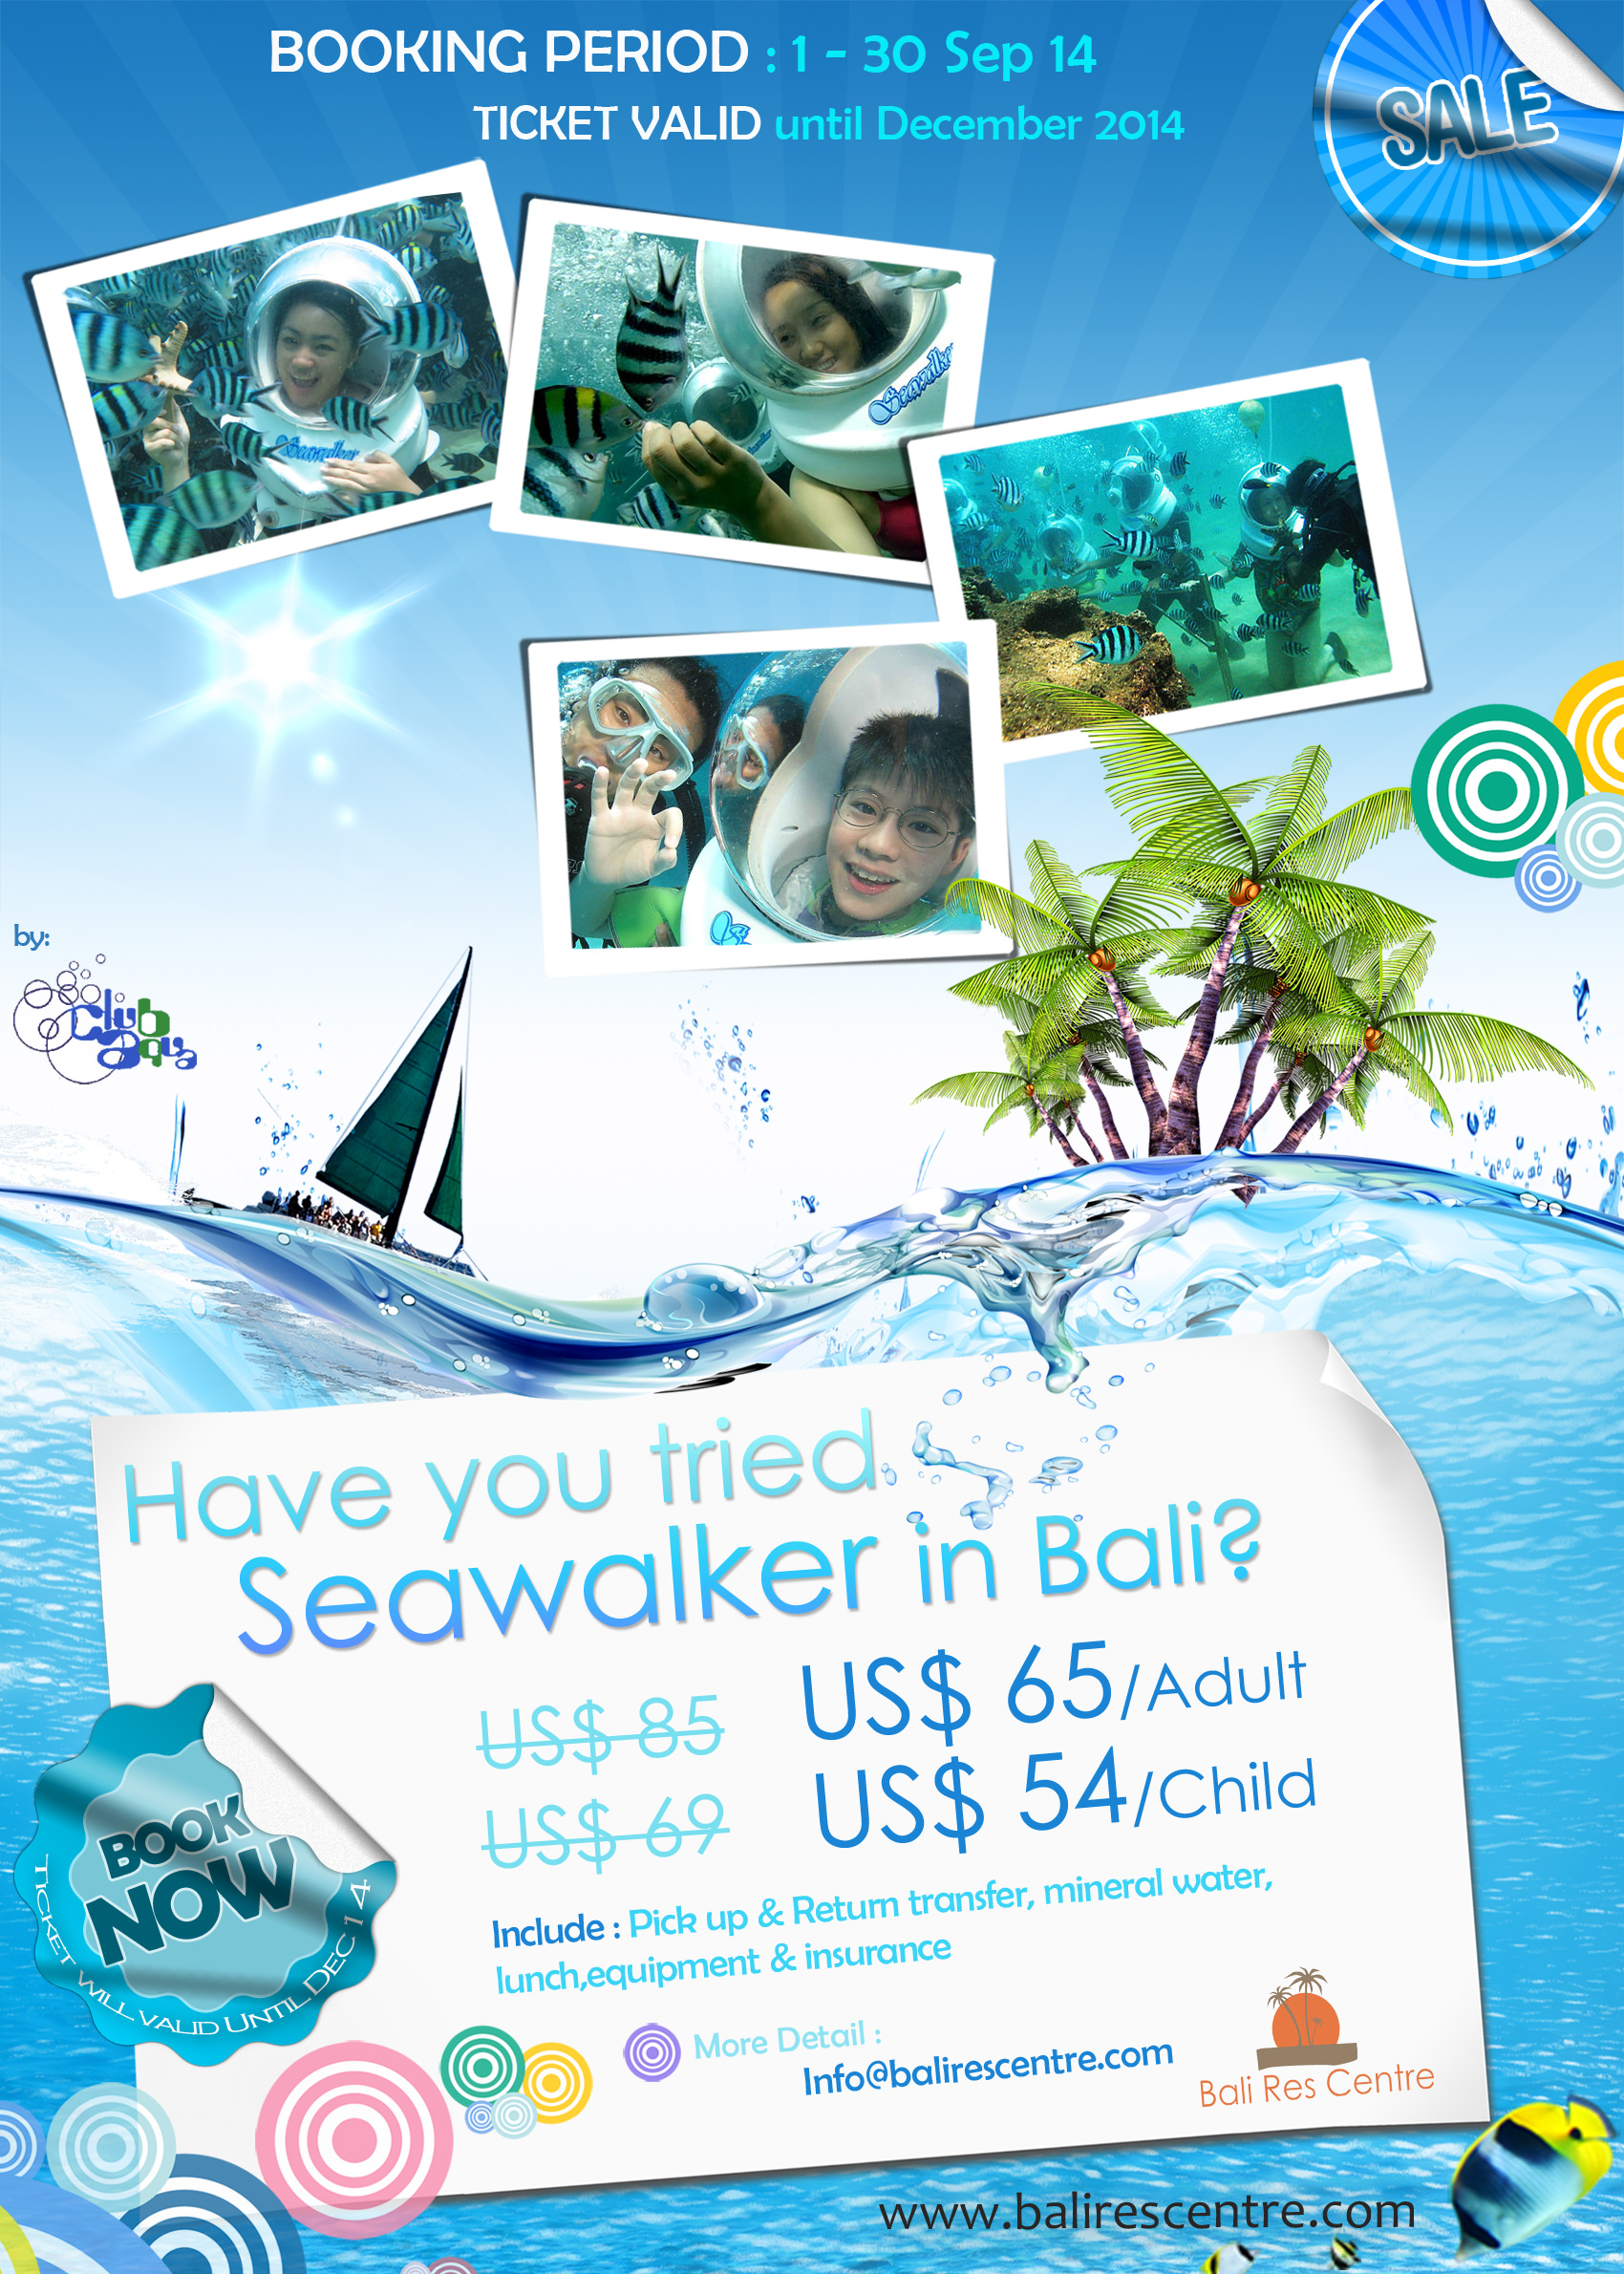 Sea Walker Bali Promo 1-30 Sept 2014